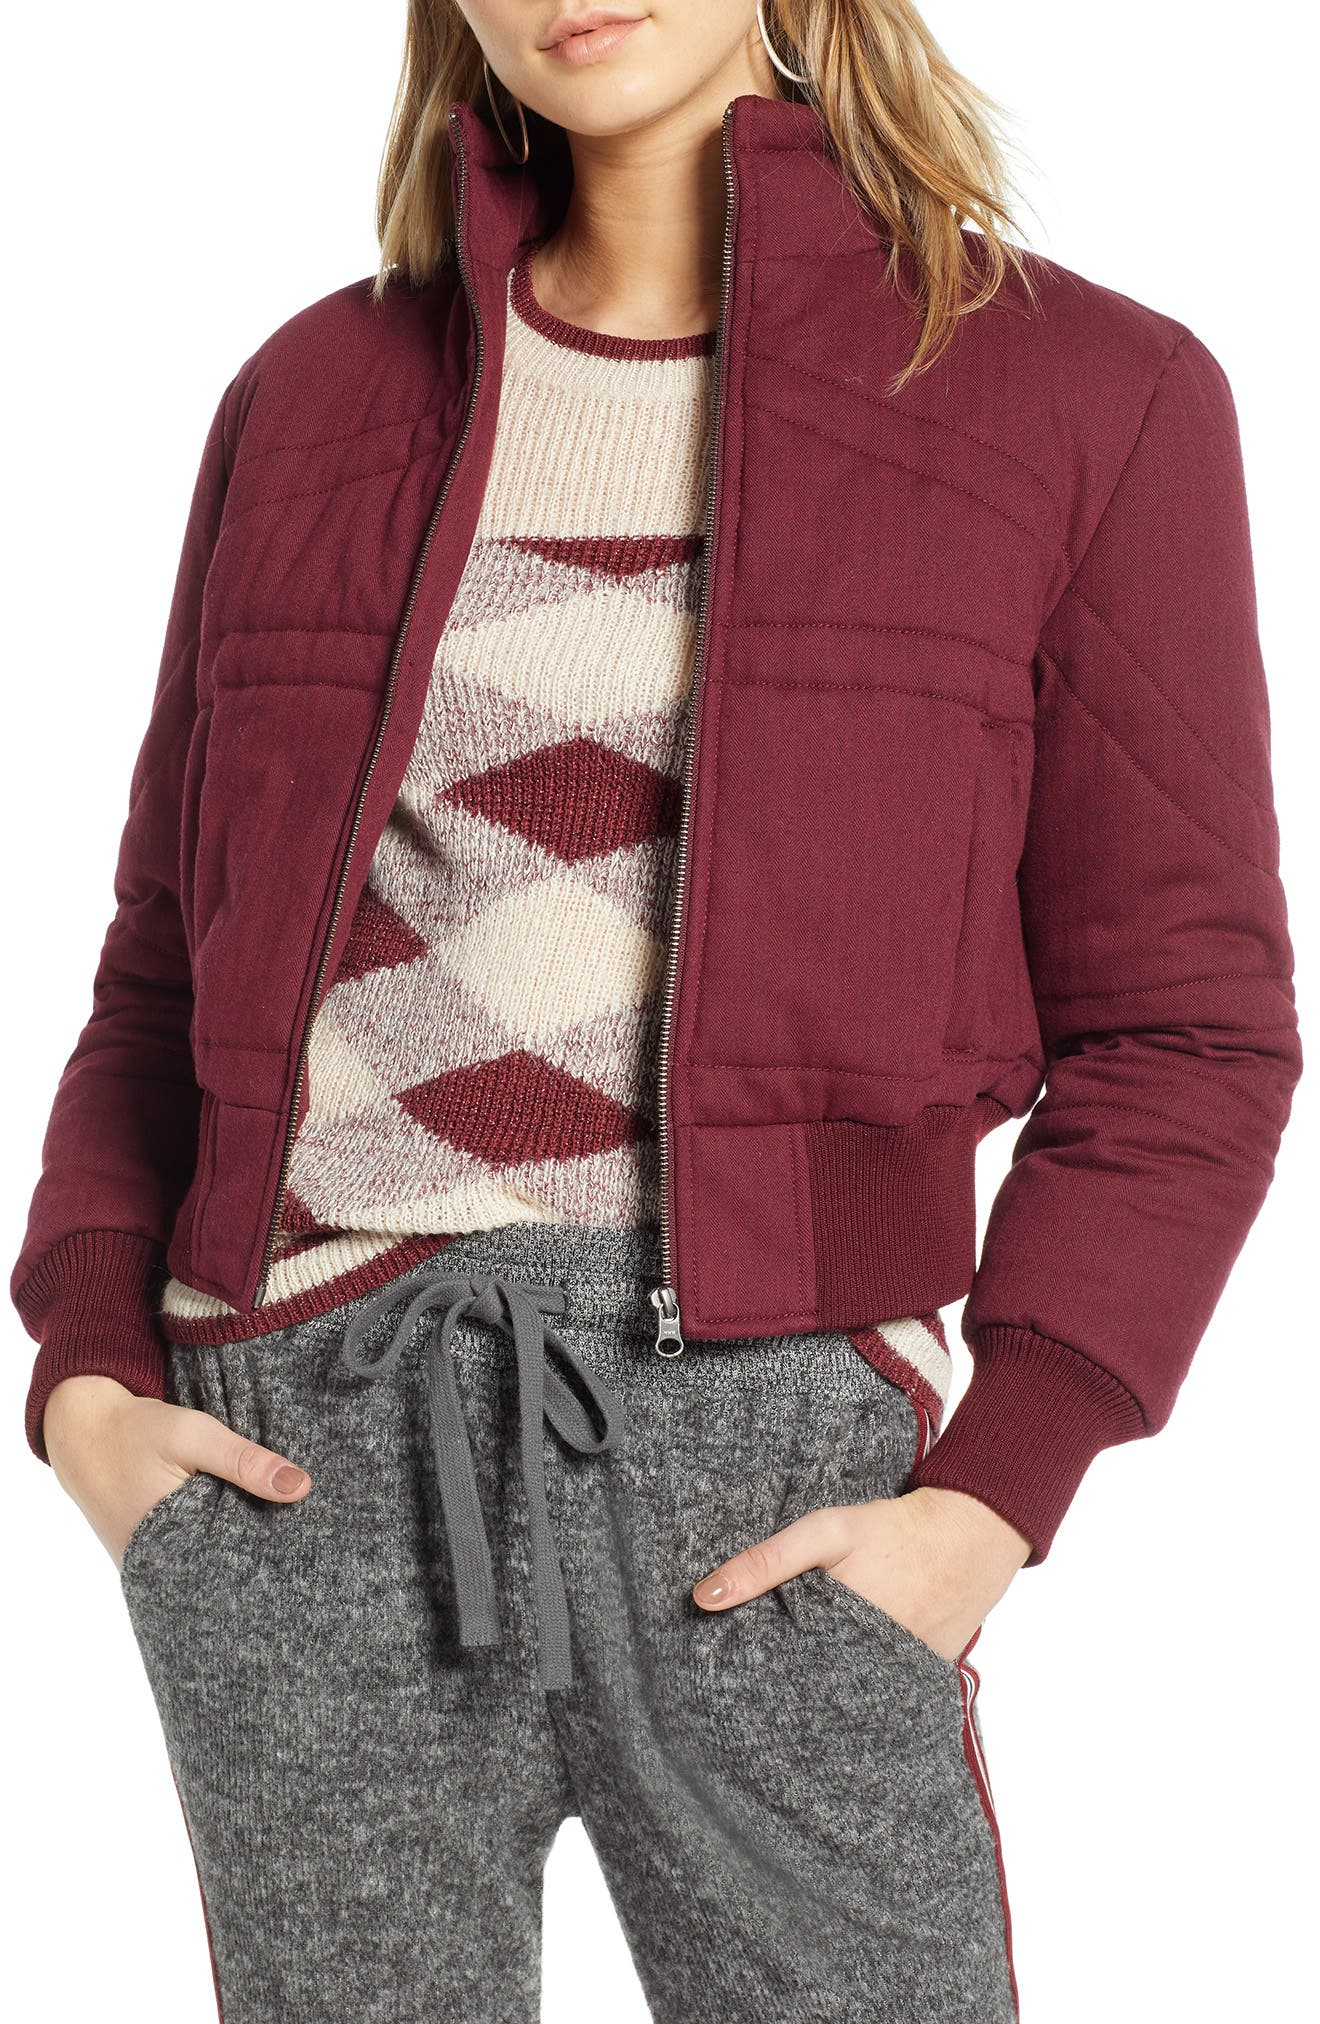 TREASURE & BOND Flannel Crop Puffer Jacket, Main, color, RED TANNIN HEATHER